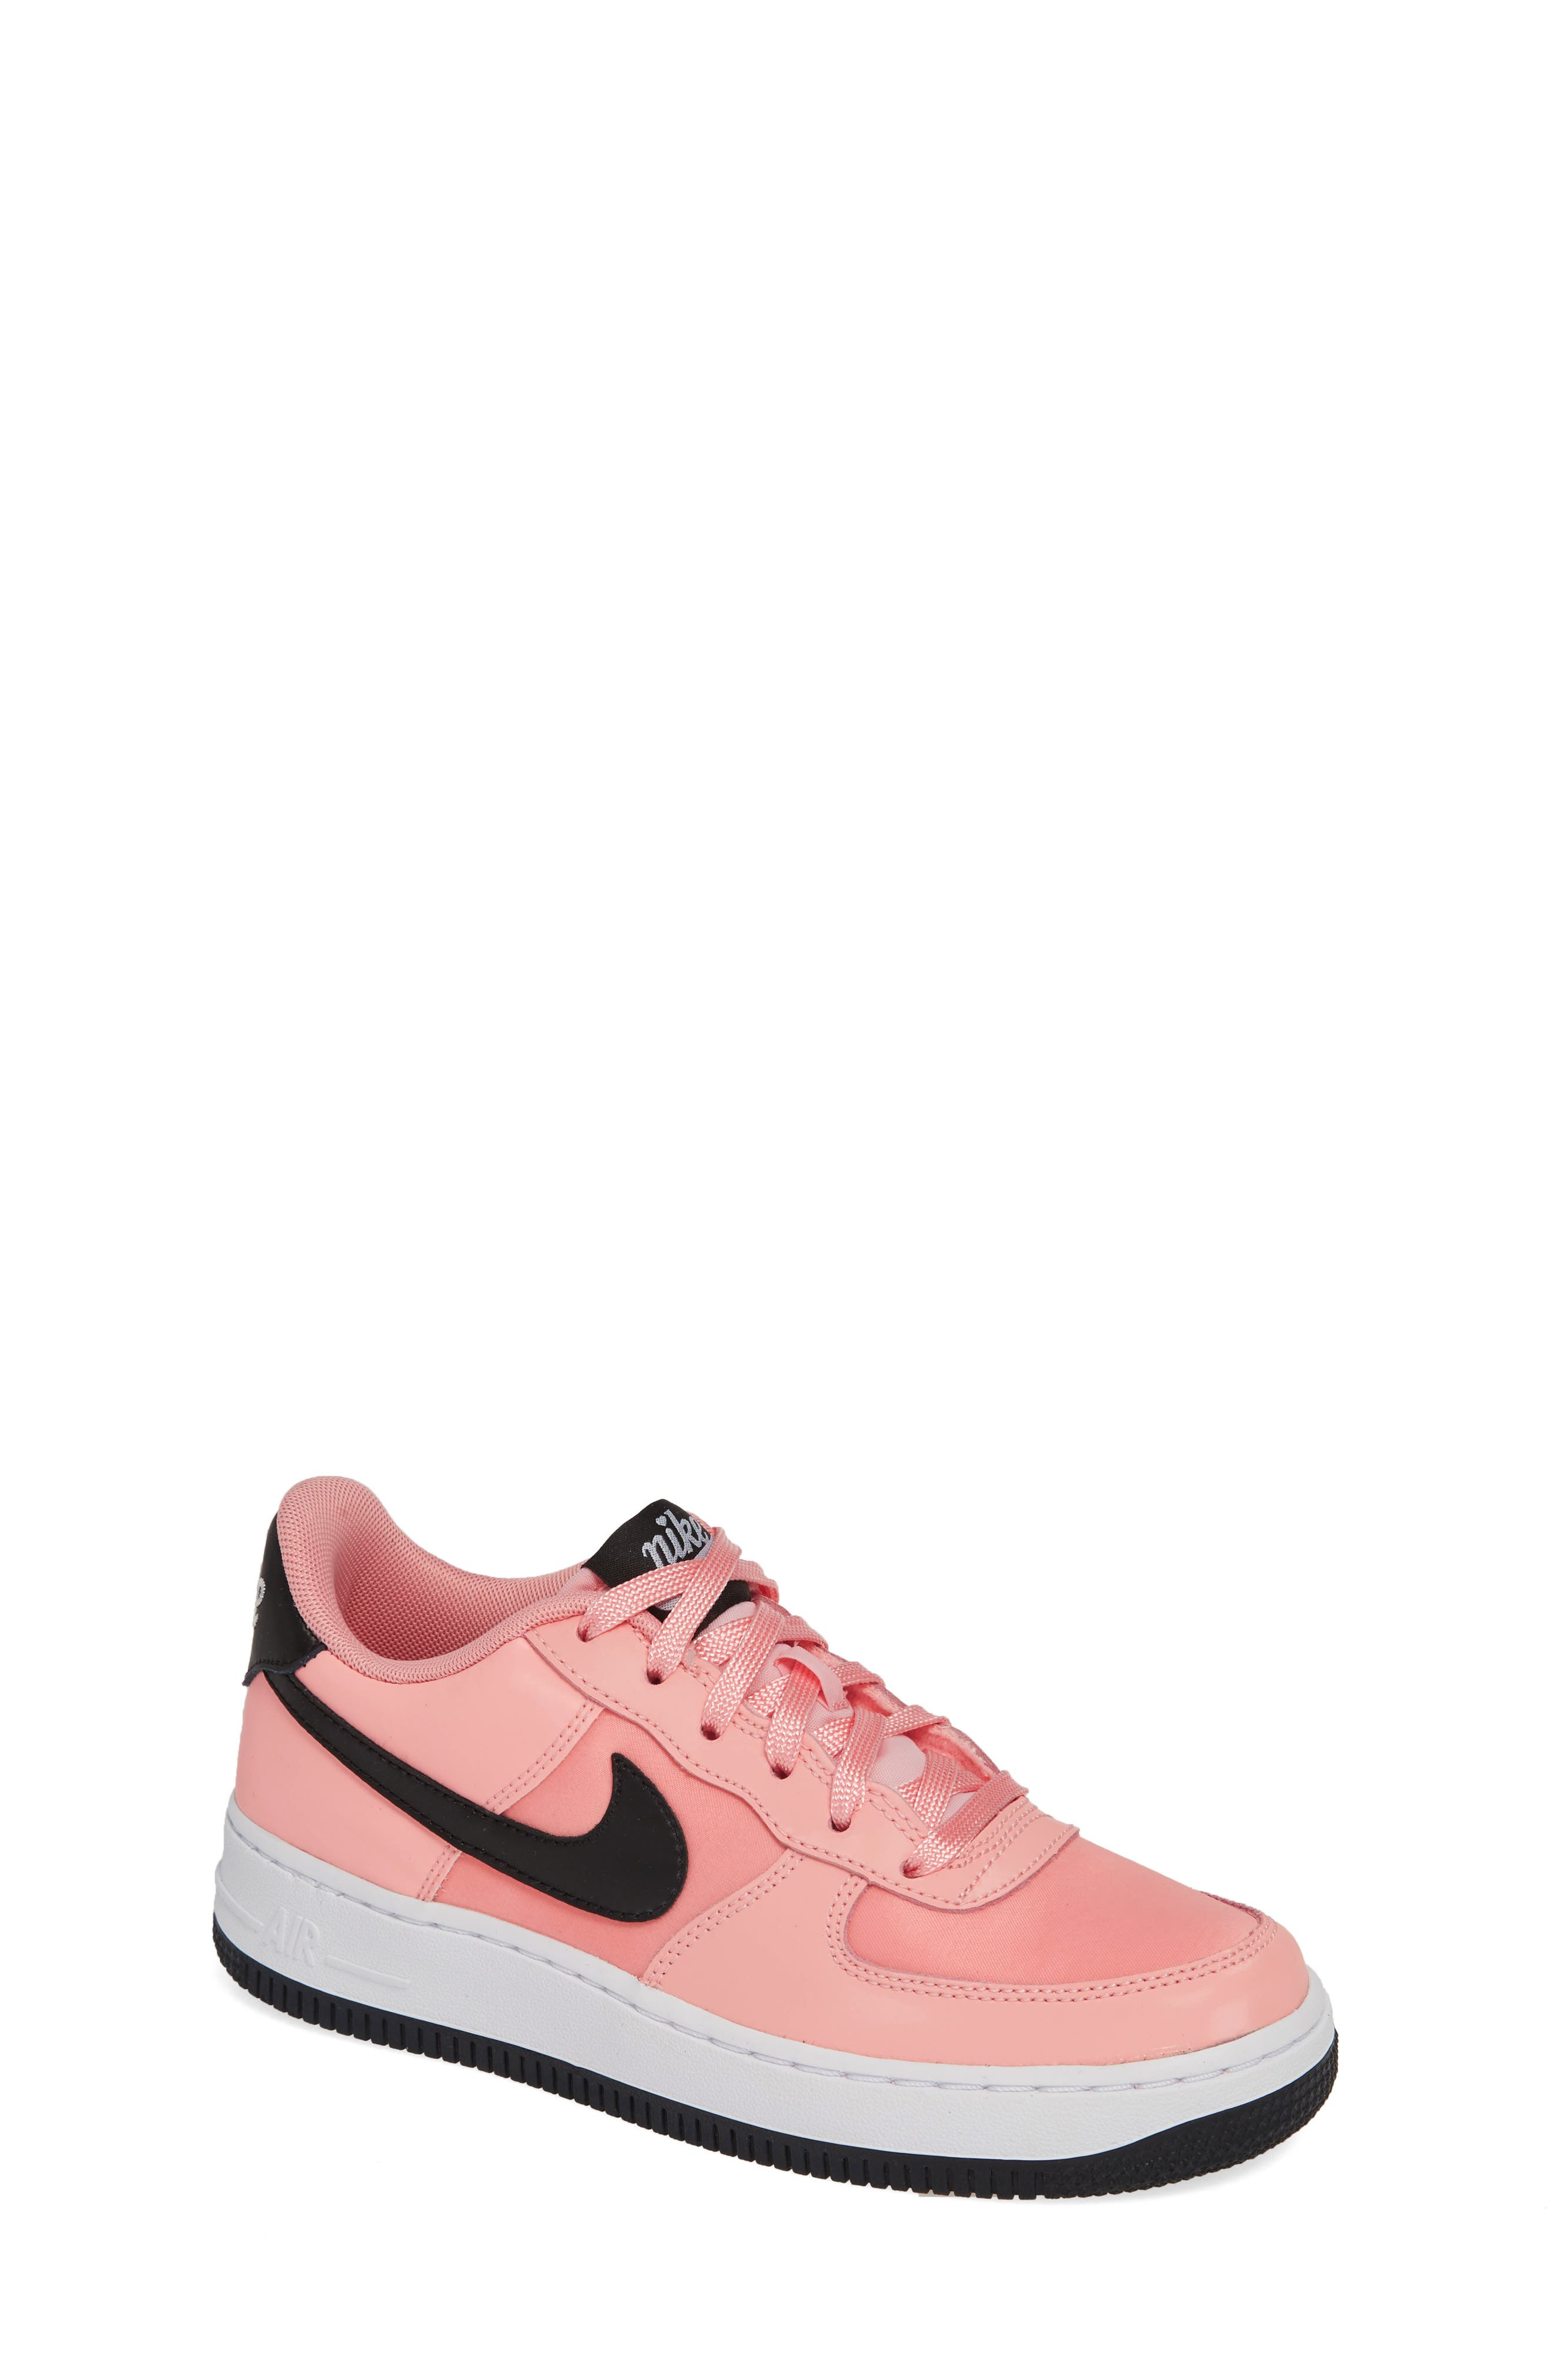 Air Force 1 VDAY Sneaker,                             Main thumbnail 1, color,                             BLEACHED CORAL/ BLACK-WHITE